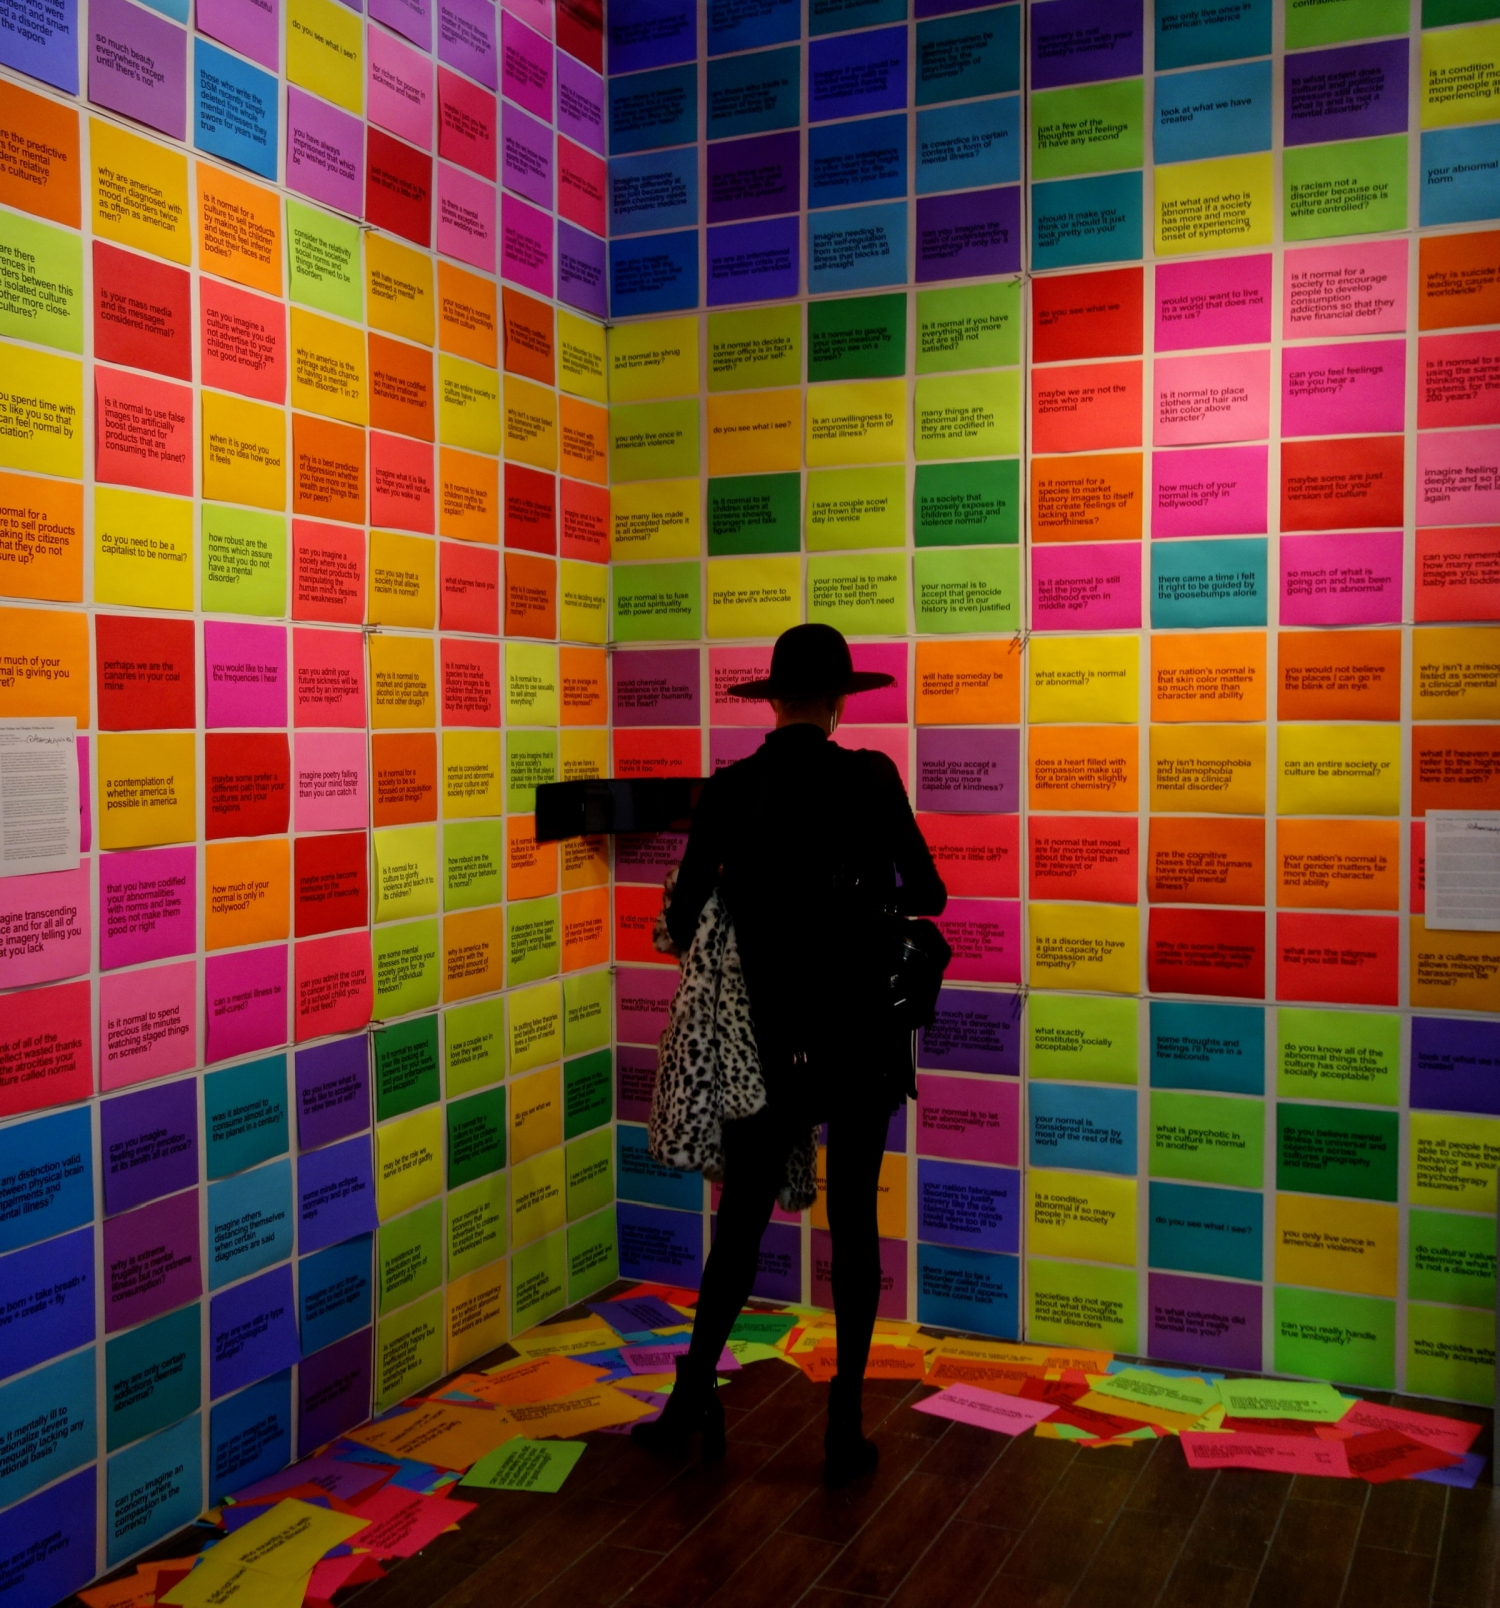 "Additional installation view. Along with the 256 text elements themselves, the 25 colors represent both the breadth and varying intensity of the artist's bipolar 1 thoughts and feelings on a particular subject when in a hypomanic (mild mania) state, thus providing the viewer with a proximate experience of having an ""abnormal"" mind. The artist recorded the amount of time his mind took to generate the 256 text statements and questions. All 256 elements came into his mind in less than 30 seconds of real time during a particularly productive hypomania."